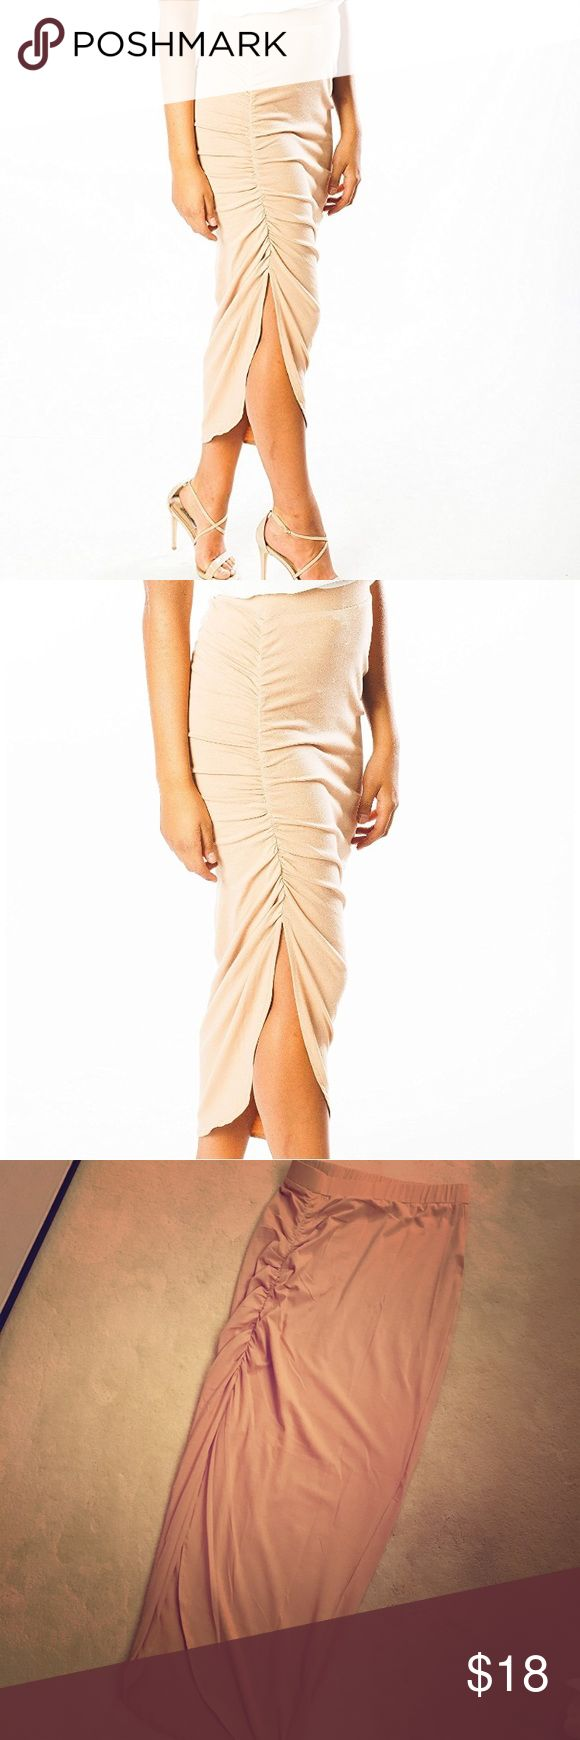 ARIANA JAMES Skirt Asymmetrical HIGH Waisted Skirt in Cotton/Lycra comfy jersey blend. It is beige colored, stretchy, very figure flattering and great to dress up or down. The side slit is sexy without revealing too much. This is a winner!! Size MEDIUM (#12-5) Ariana James Skirts Midi